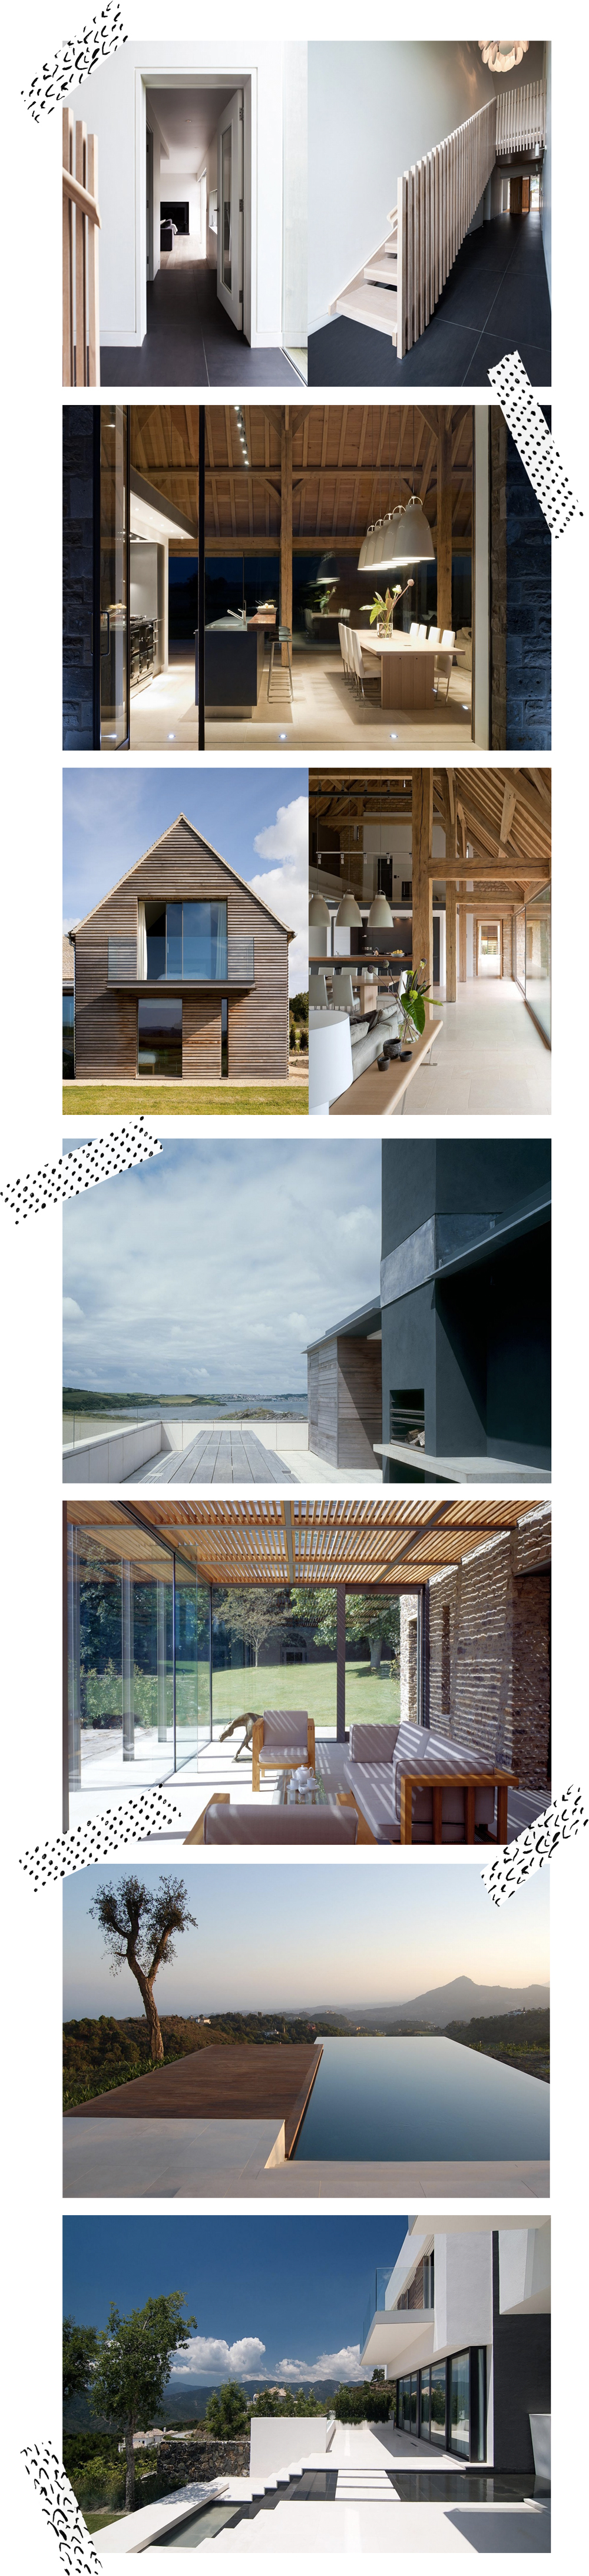 McLean Quinlan Architects